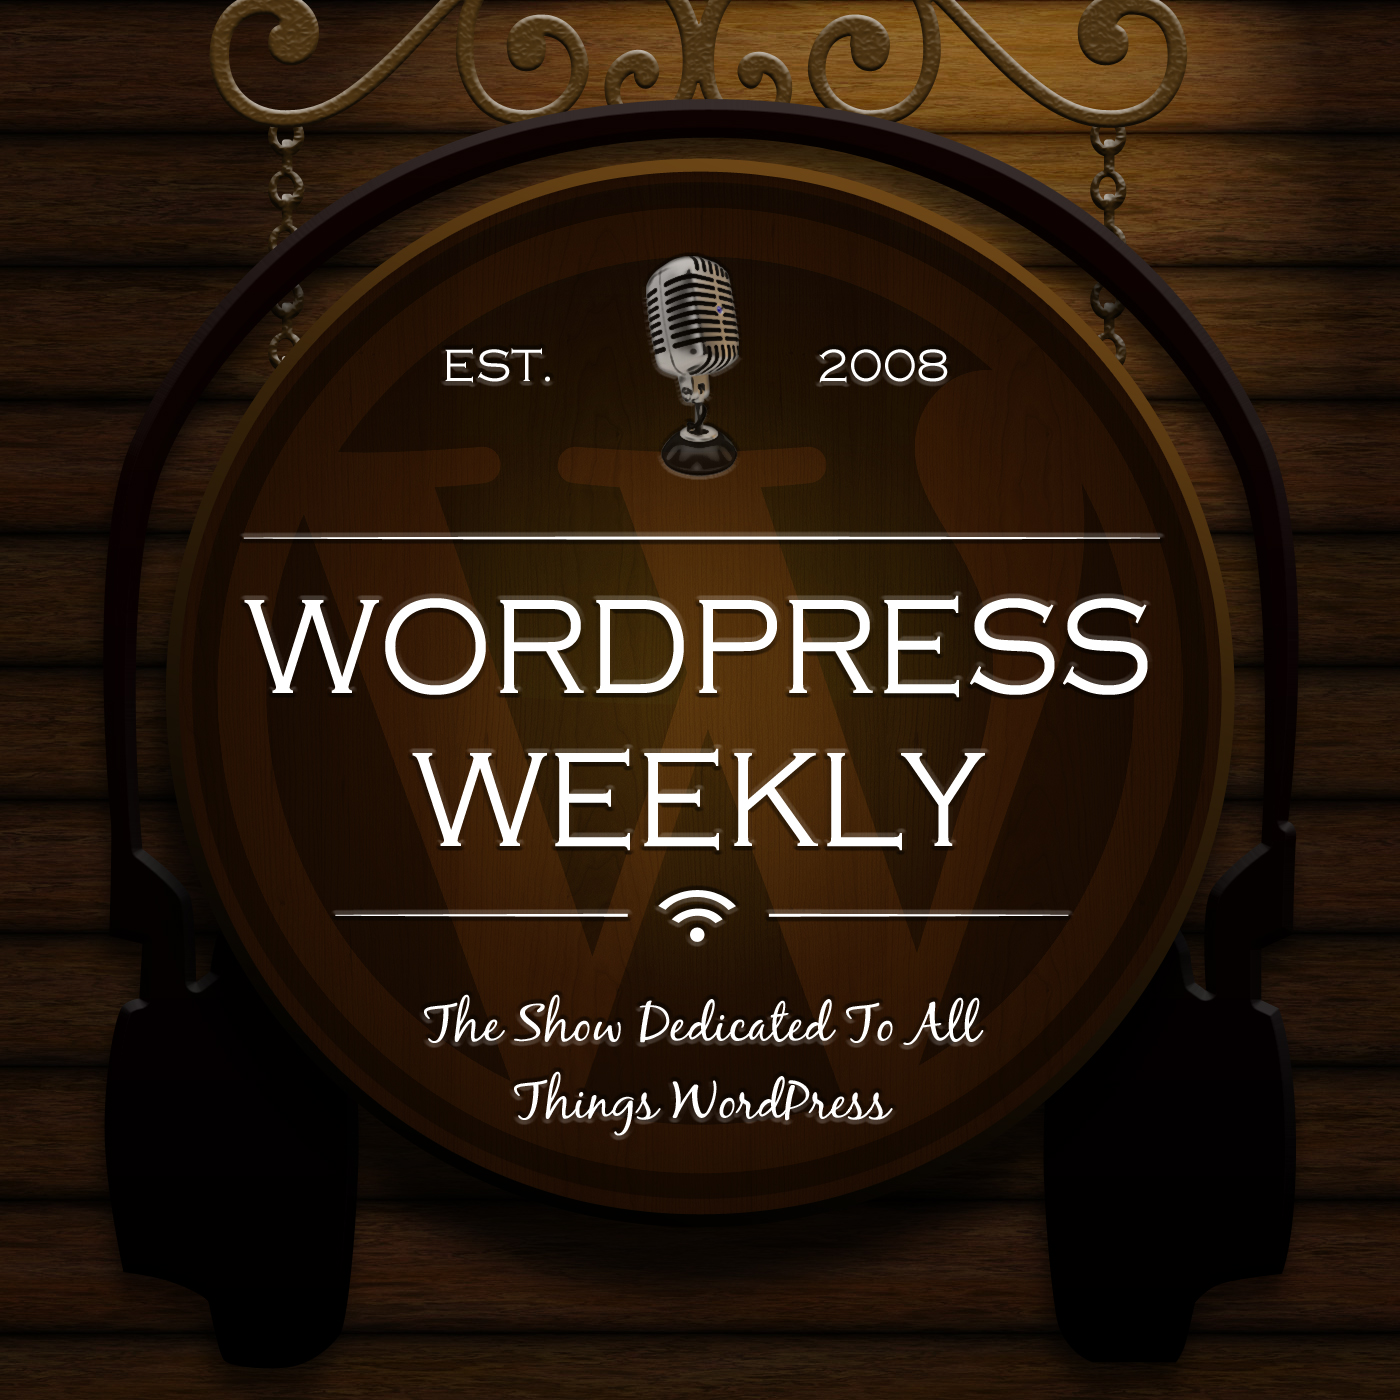 WordPress Weekly